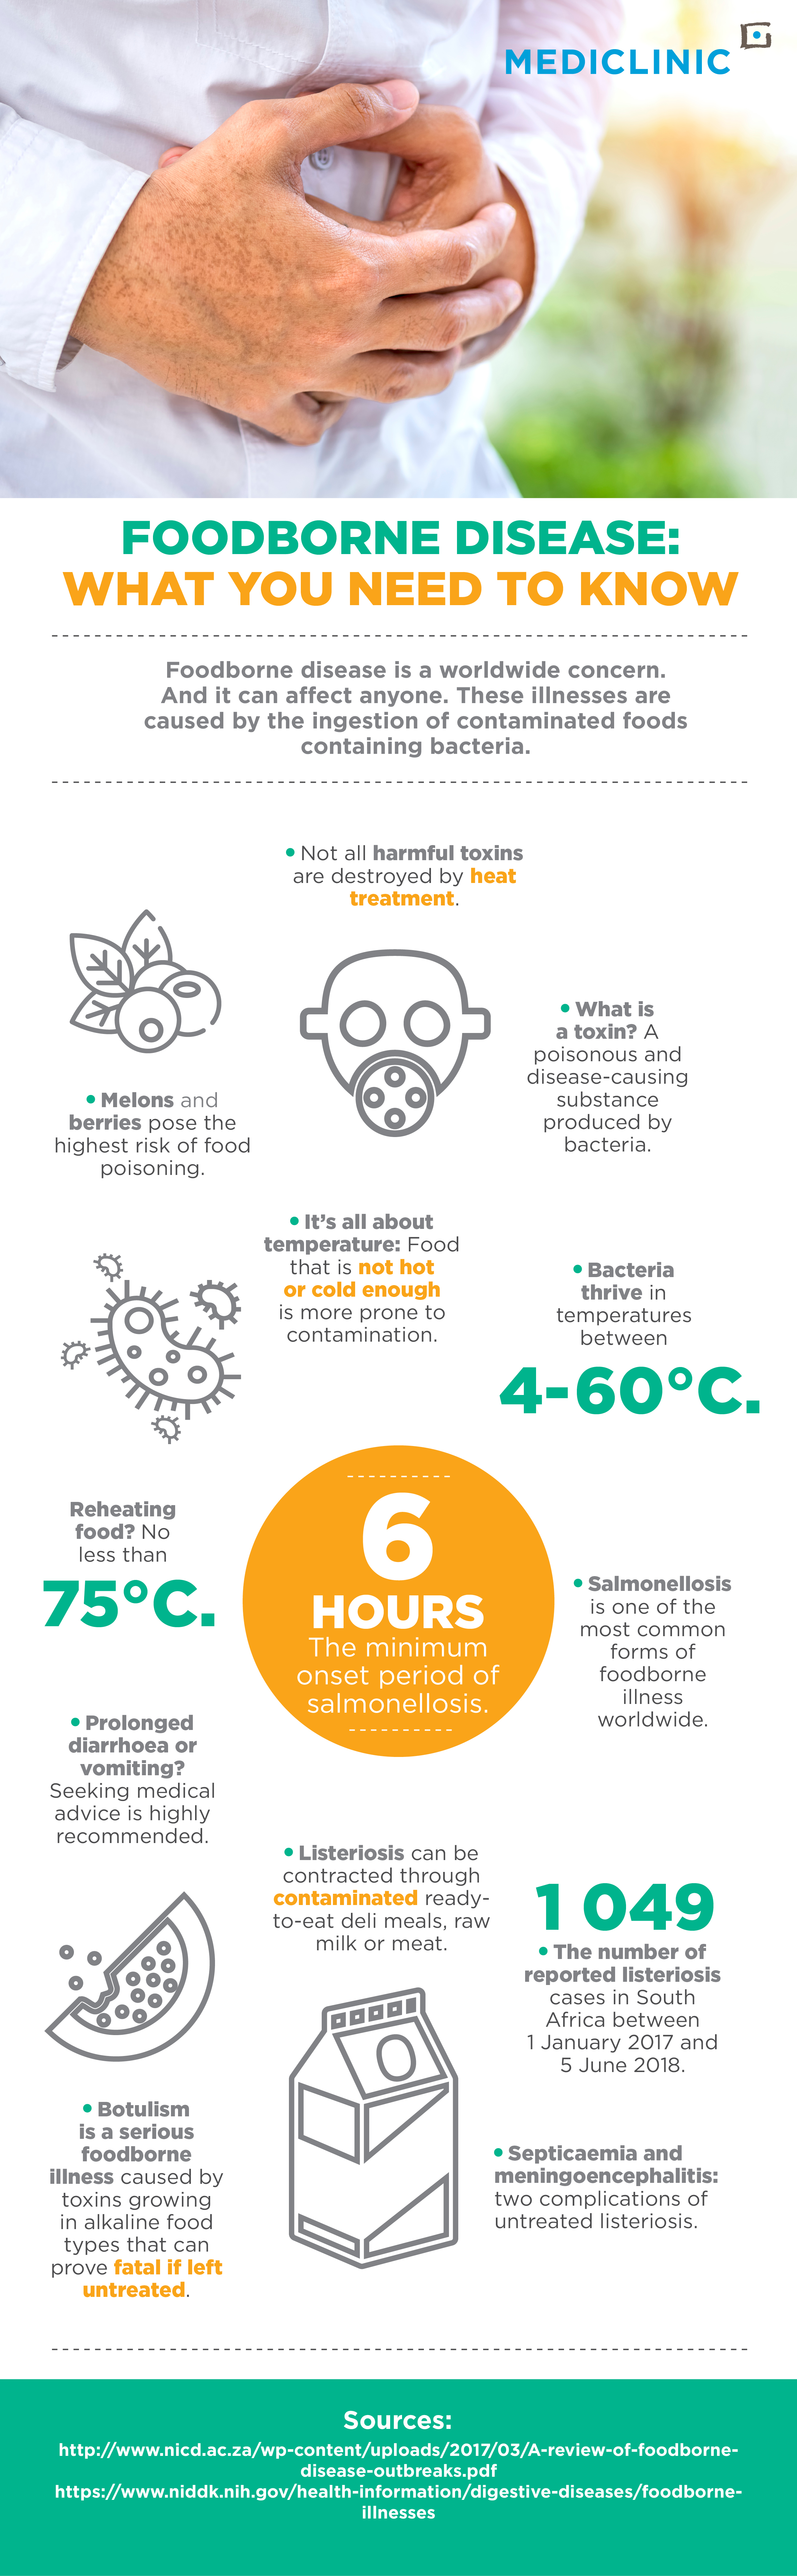 food-borne disease, food poisoning, food safety, food, infographic